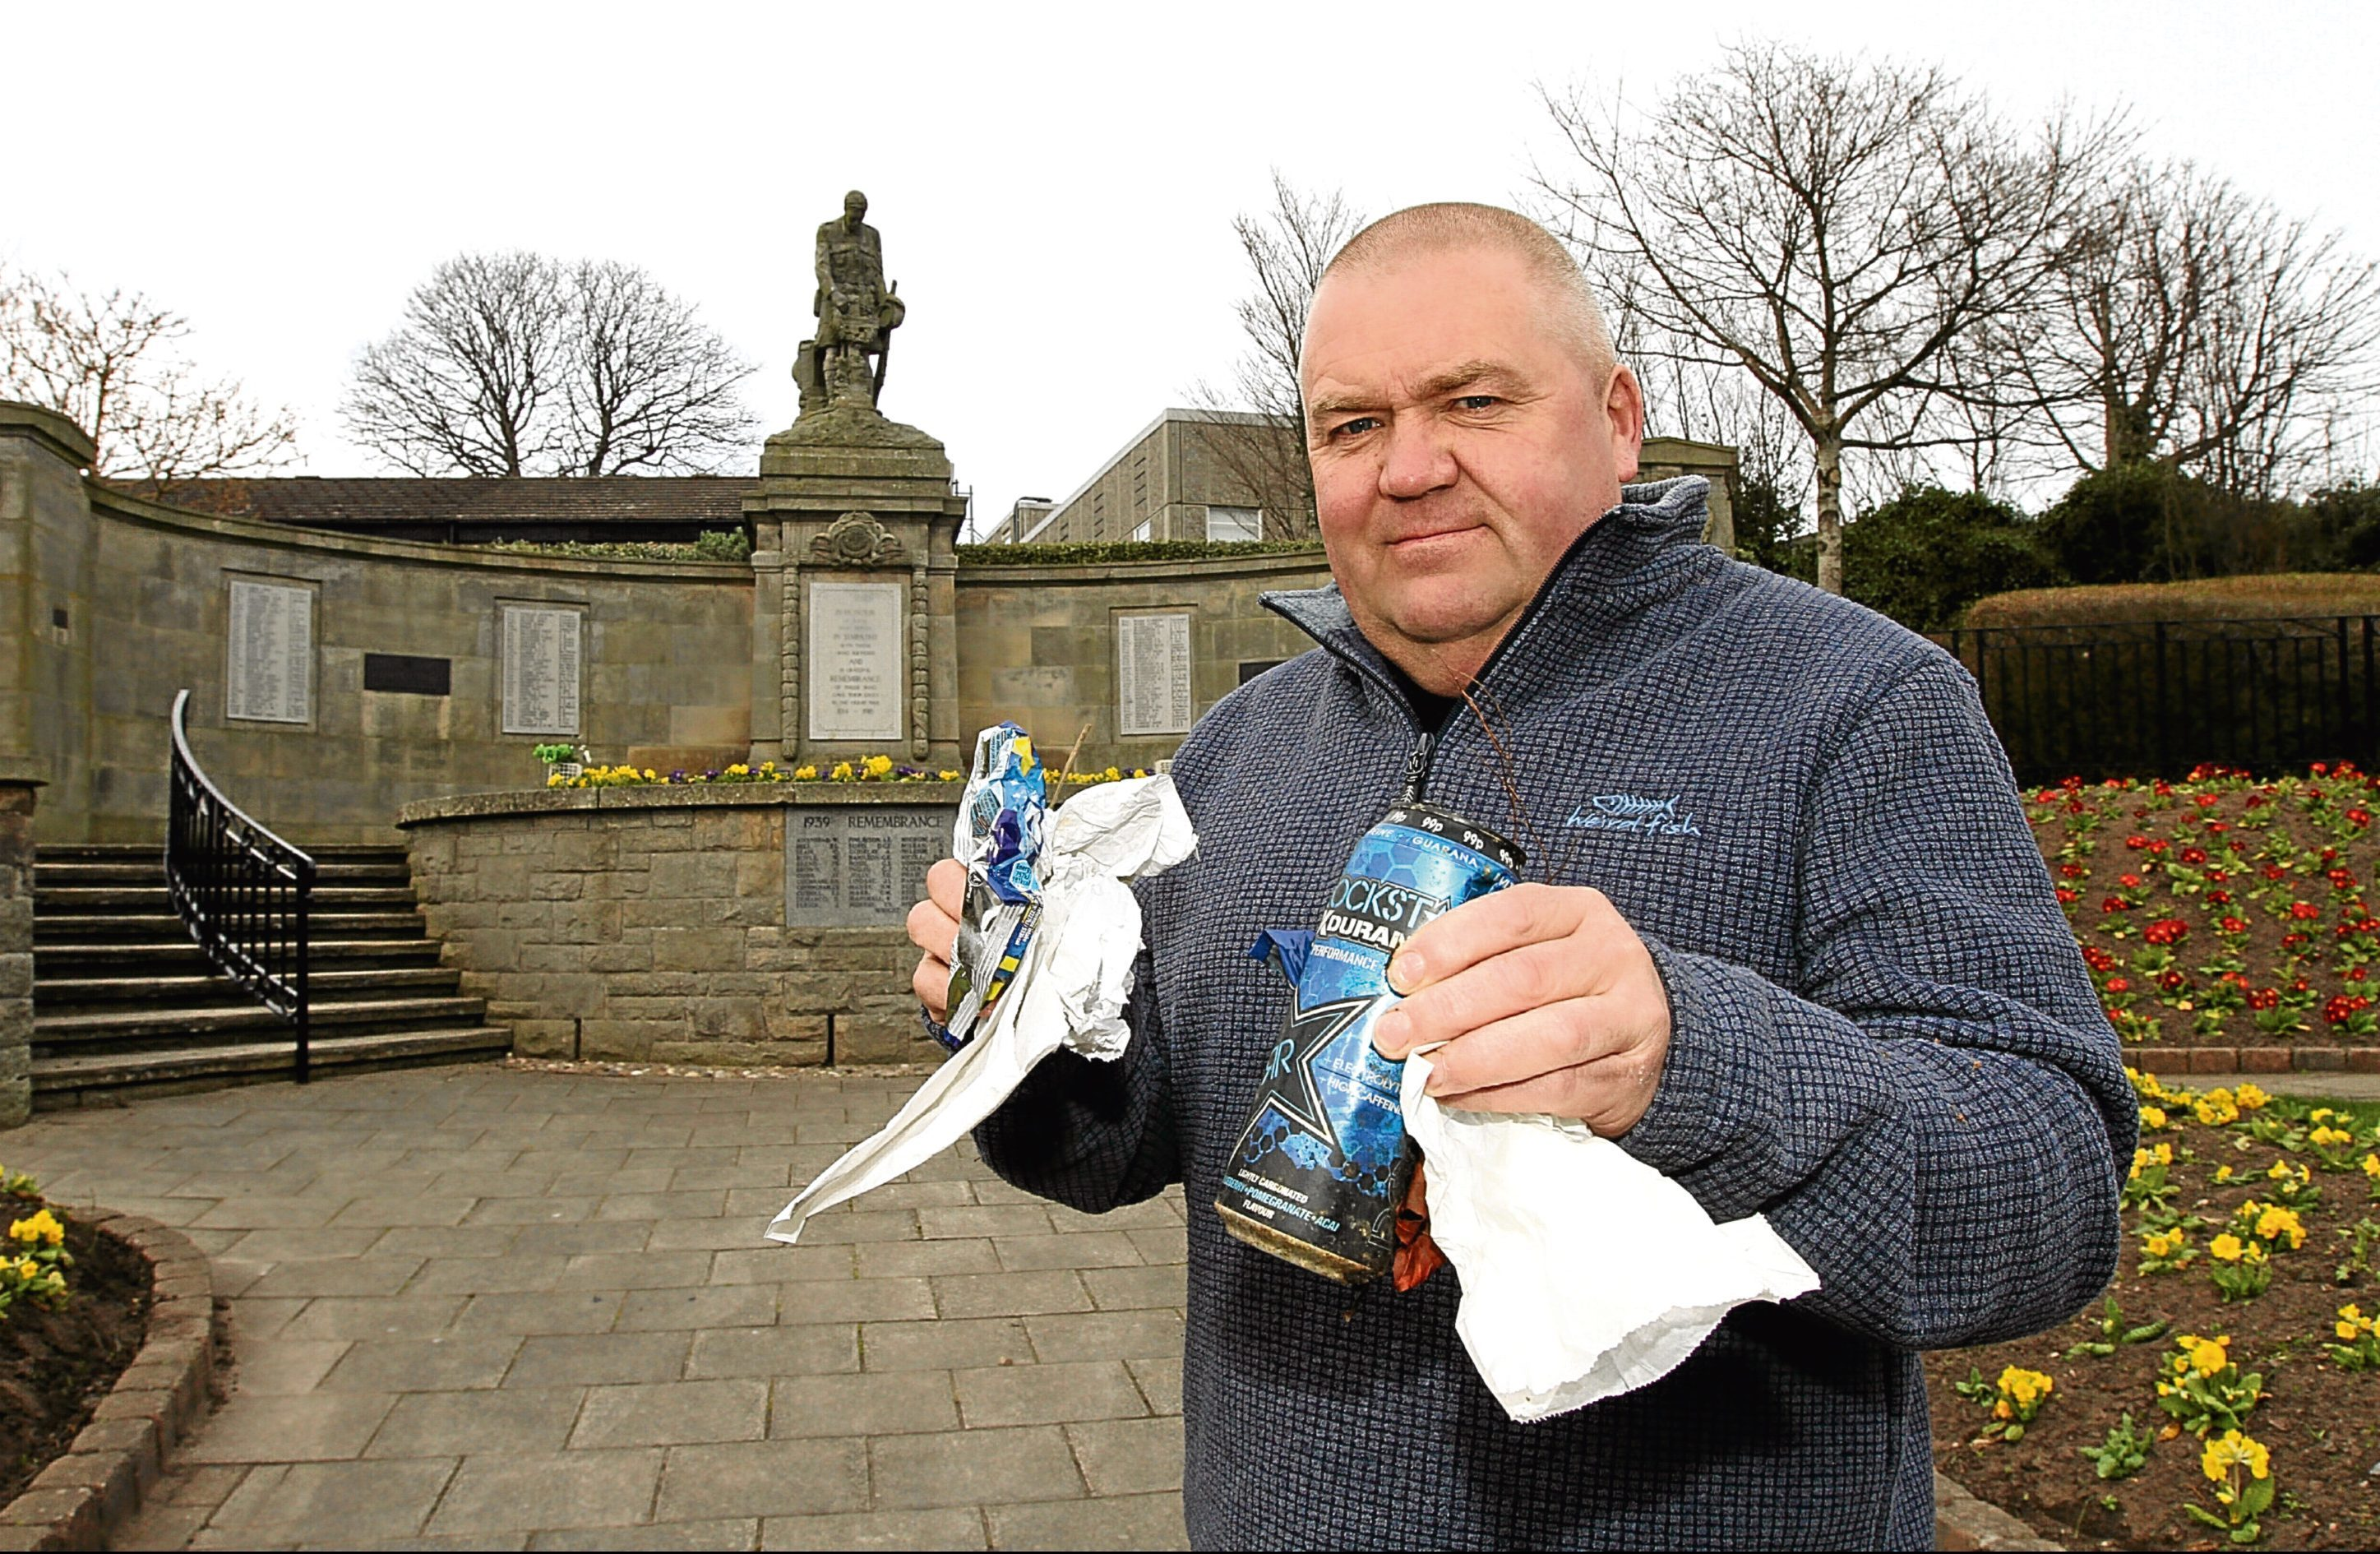 Local binman Ian Noble with rubbish picked up at the memorial